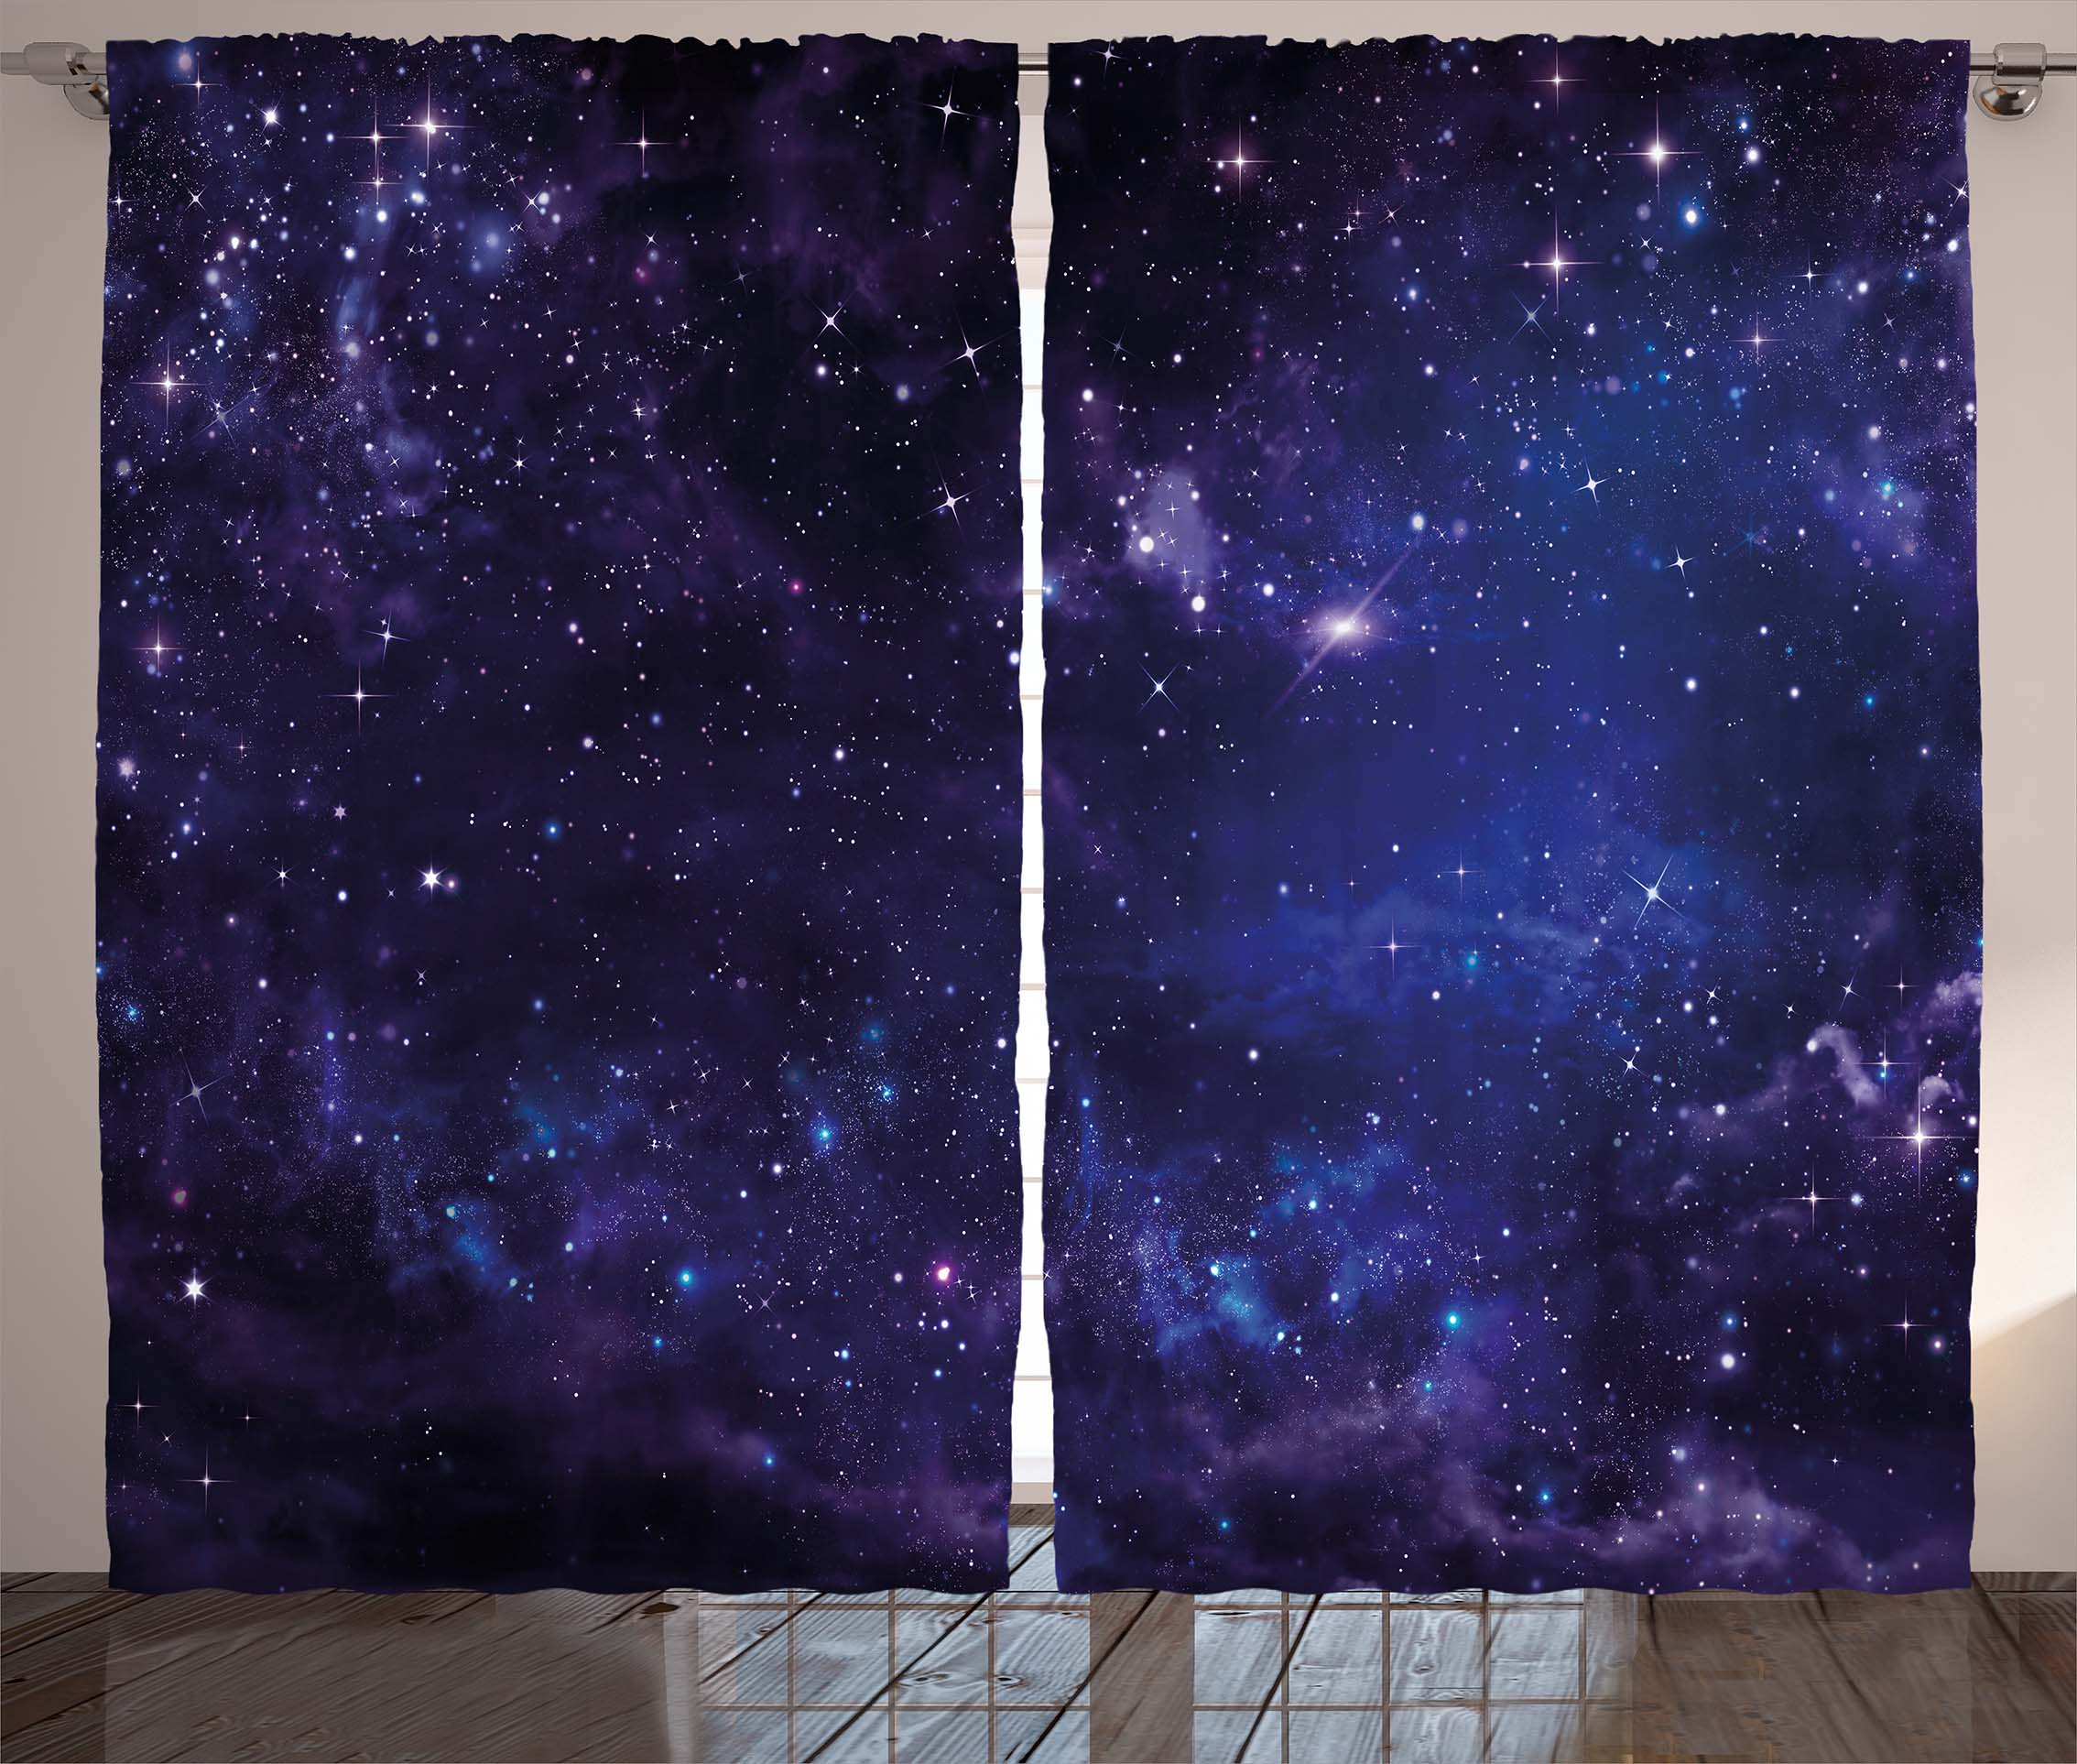 Galaxy Curtains 2 Panels Set Celestial Stars In Night Sky Rhwalmart: Galaxy Drapes For Bedroom At Home Improvement Advice